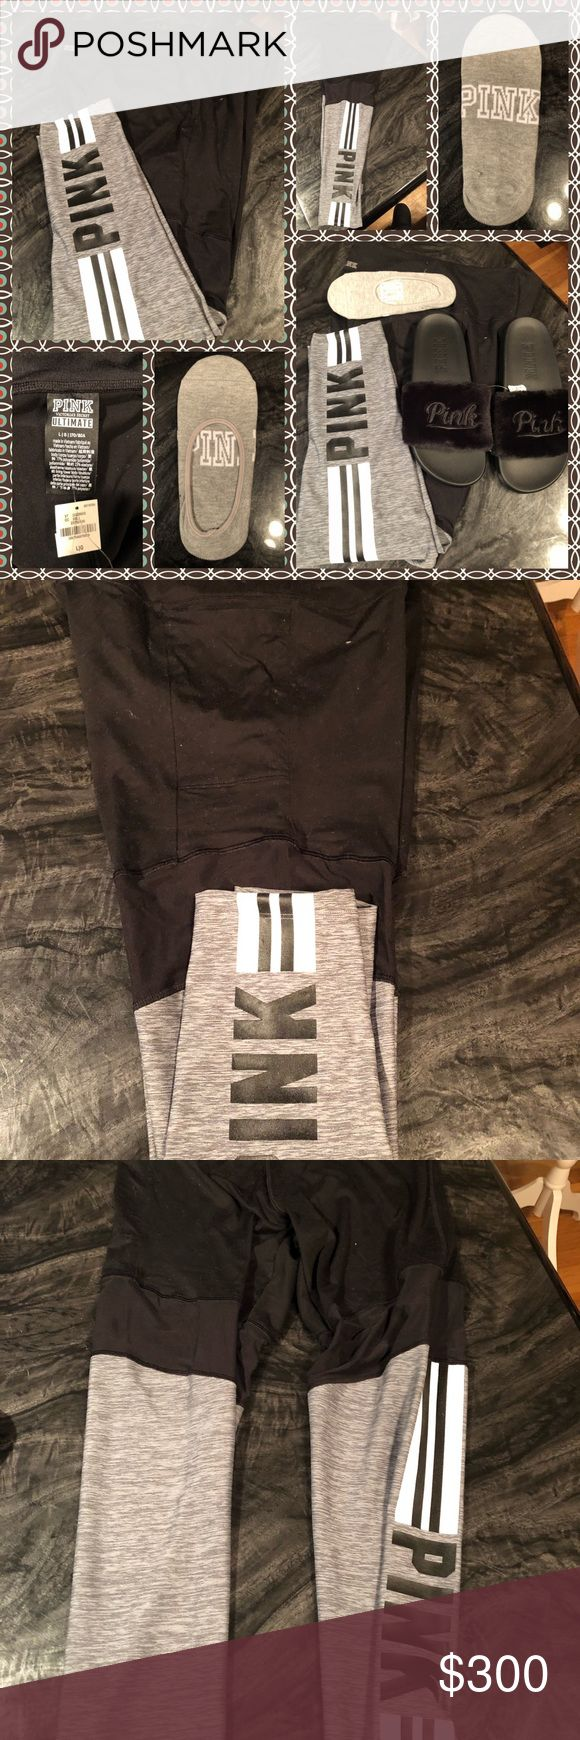 BNWT PINK VS BUNDLE BNWT PINK VS BUNDLE set includes 1- pair Large ULTIMATE MESH LEGGINGS w/ 1 side pocket black top w/gray below the knee black/ white stripes PINK written in black on the leg  1- pair size L 9/10 black fur slides withe PINK embroidered across the top & 1 pair of gray no- show socks I DO Not Trade will price drop rude comments will be blocked offers discussed through offer option only PINK Victoria's Secret Pants Leggings